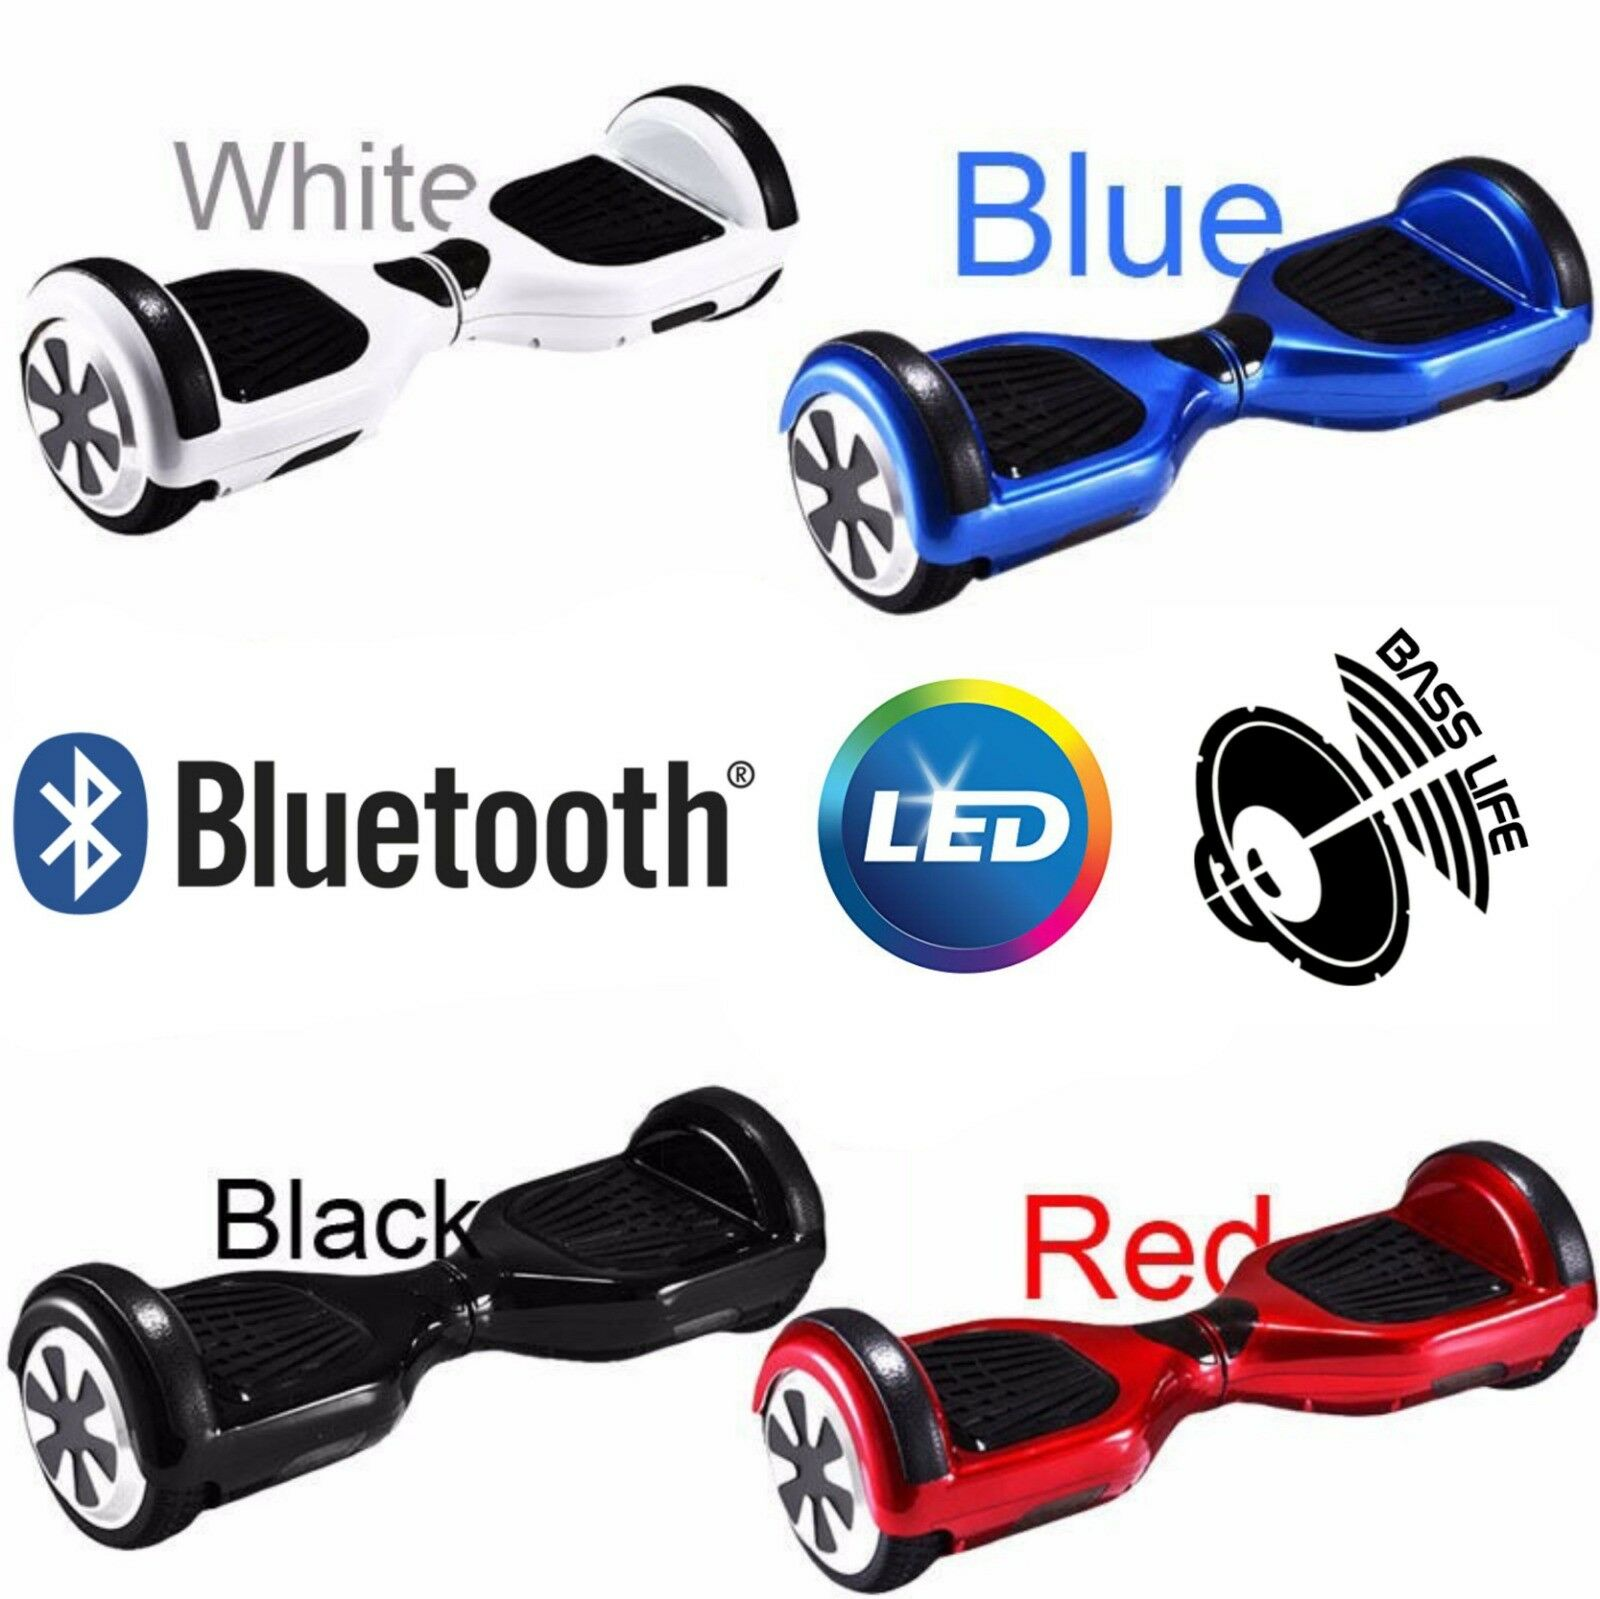 OVERBOARD 6,5 HOVERBOARD SMART BALANCE MONOPATTINO ELETTRICO SCOOTER bluTOOTH